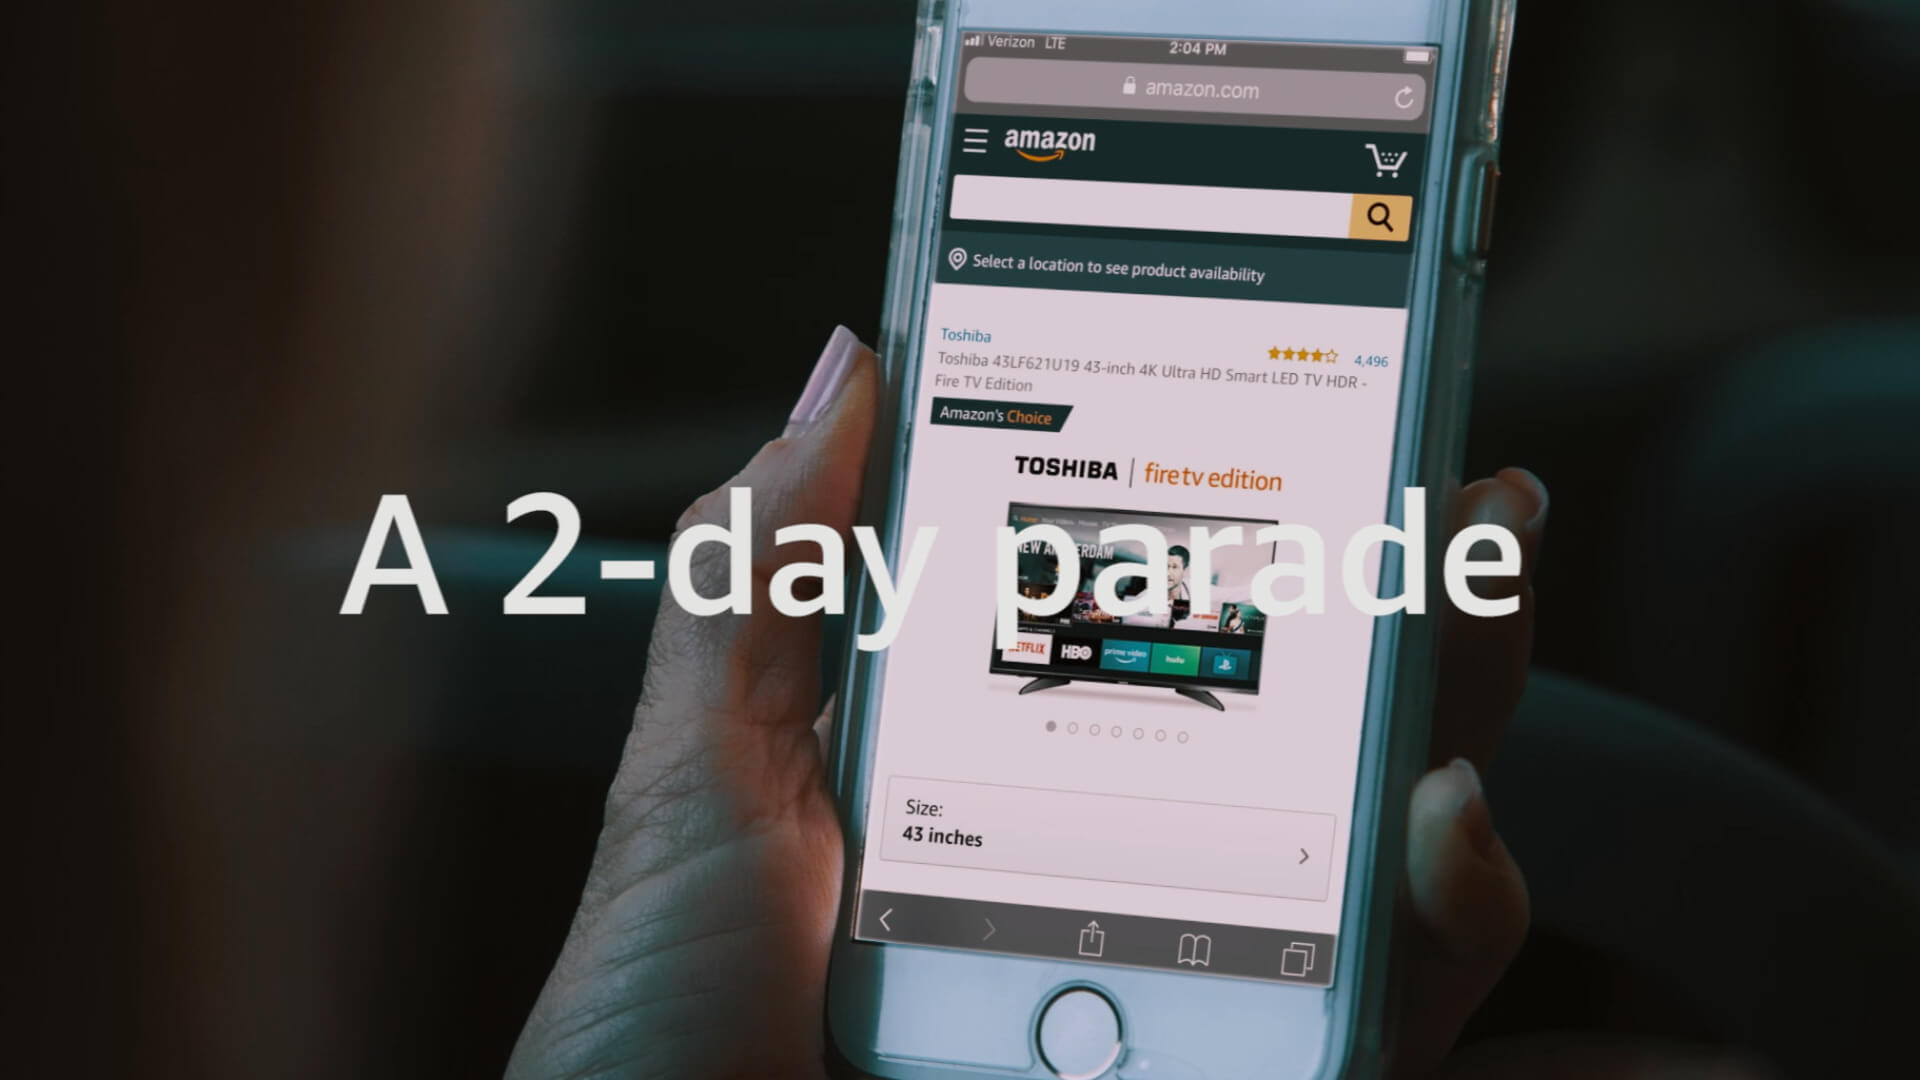 Prime Day sales topped Amazons Black Friday Cyber Monday